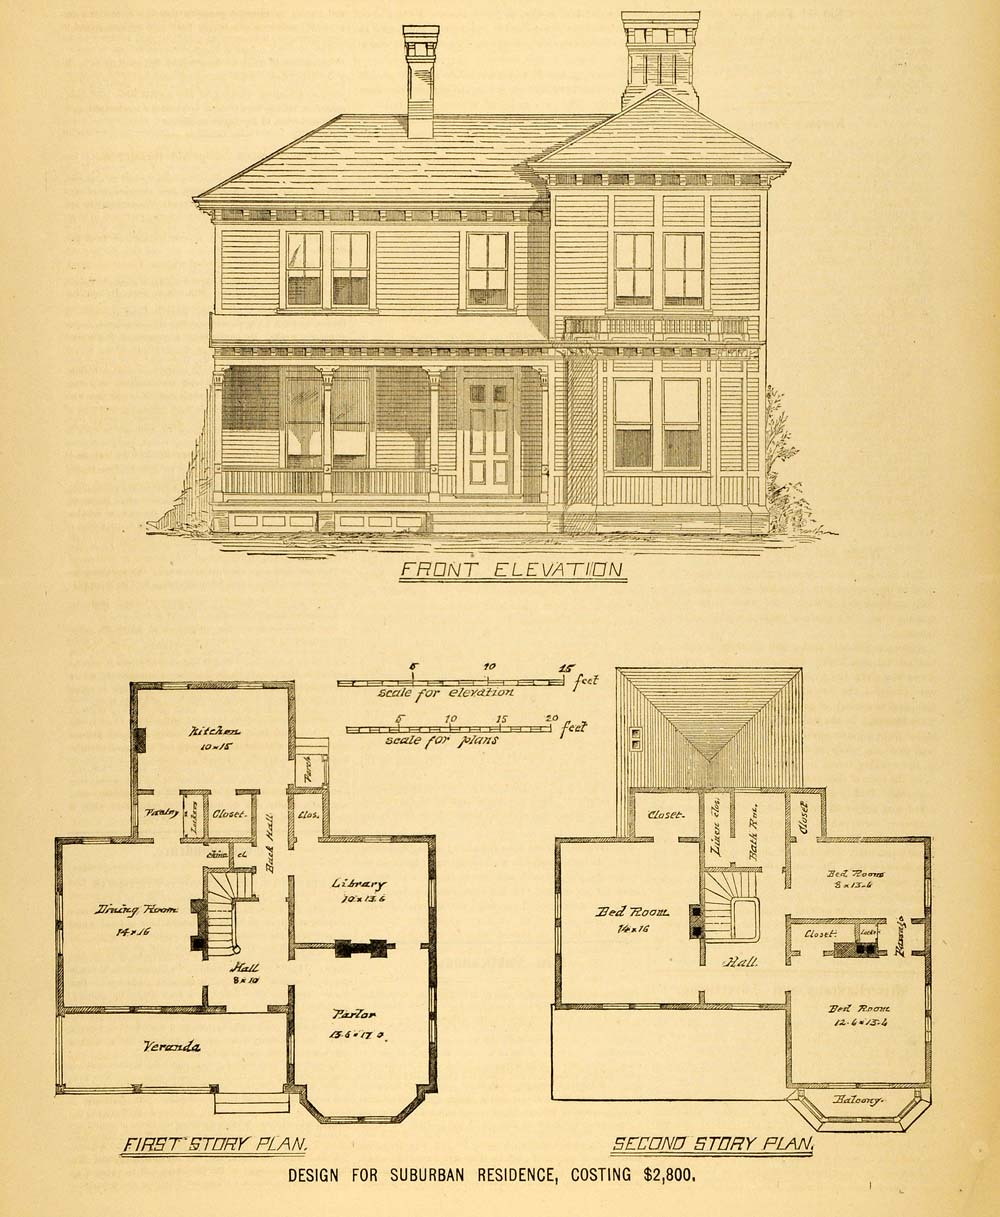 1878 print house architectural design floor plans for Architectural design house plans